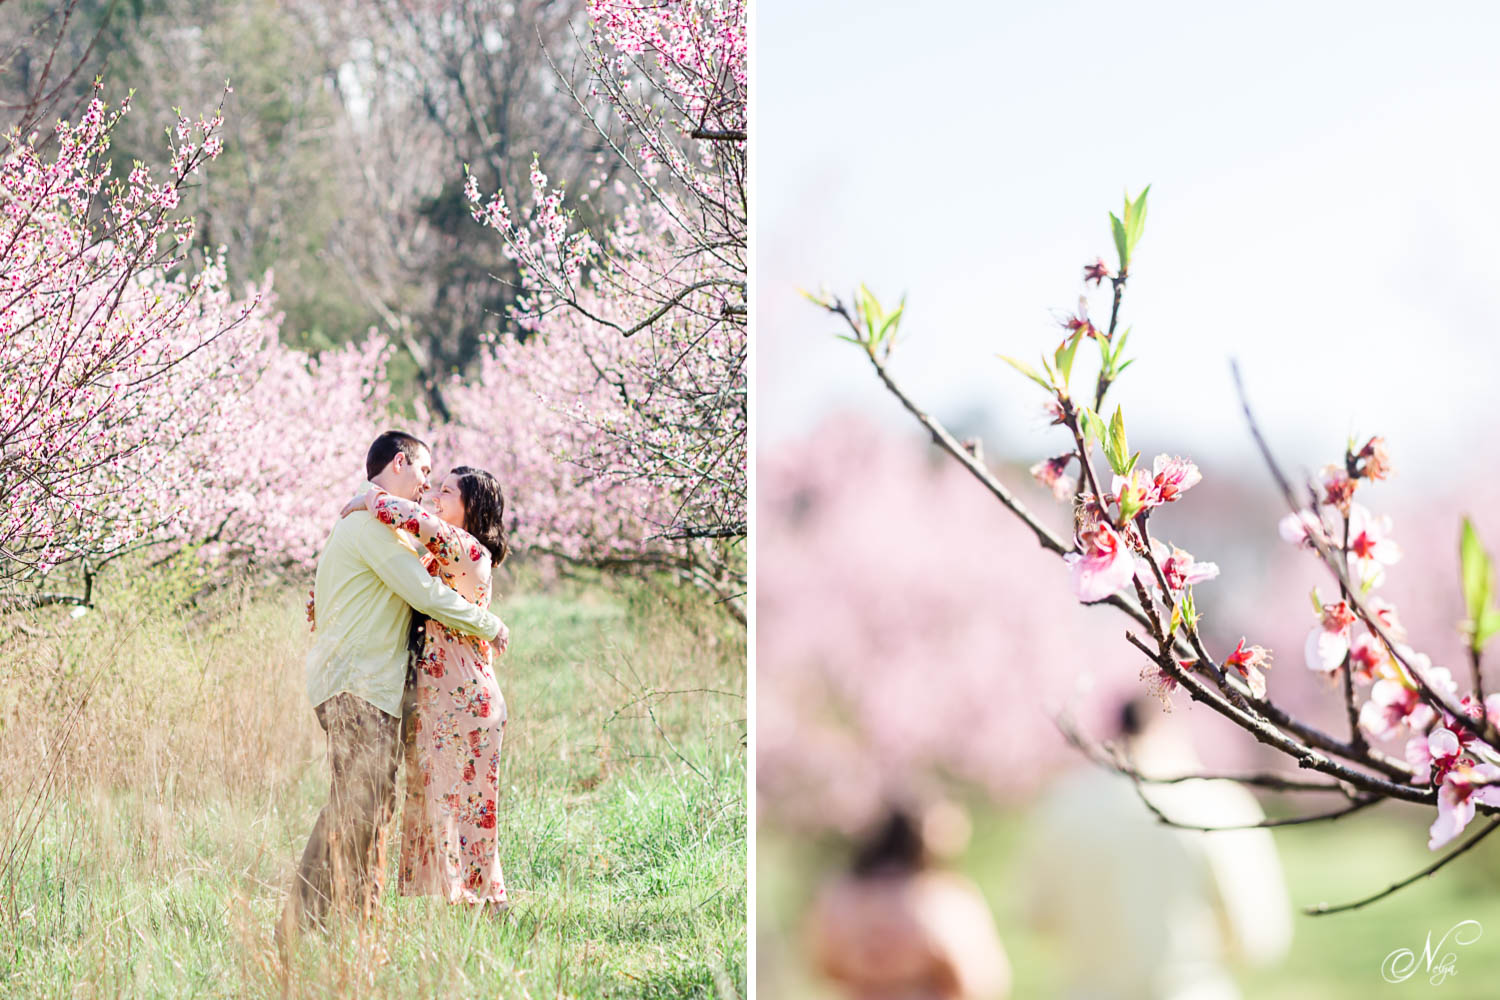 girl wearing pink floral wrap dress and guy in yellow shirt and gray pants. and close up photo of peach blossoms